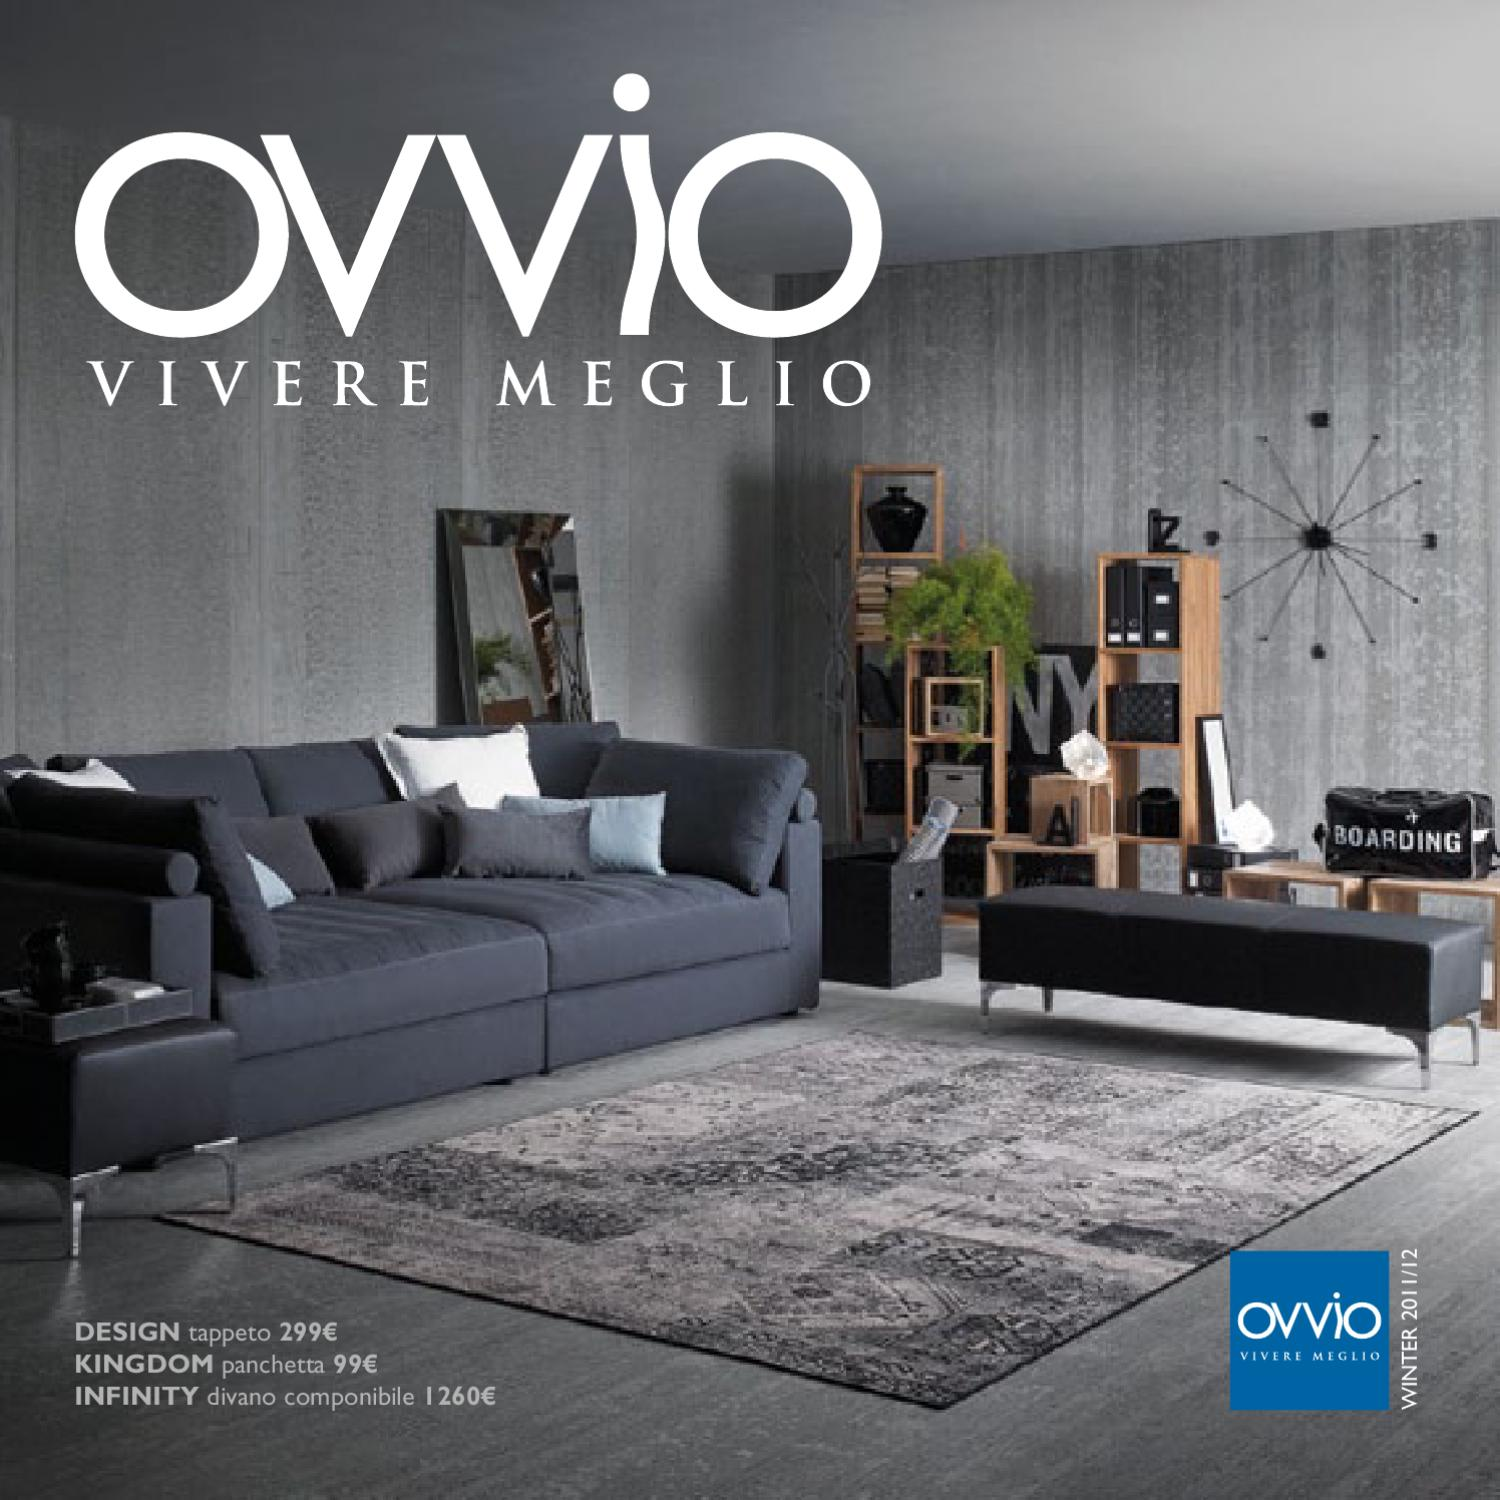 Ovvio catalogo 2012 by marco pedrali issuu for Asta mobili catalogo 2017